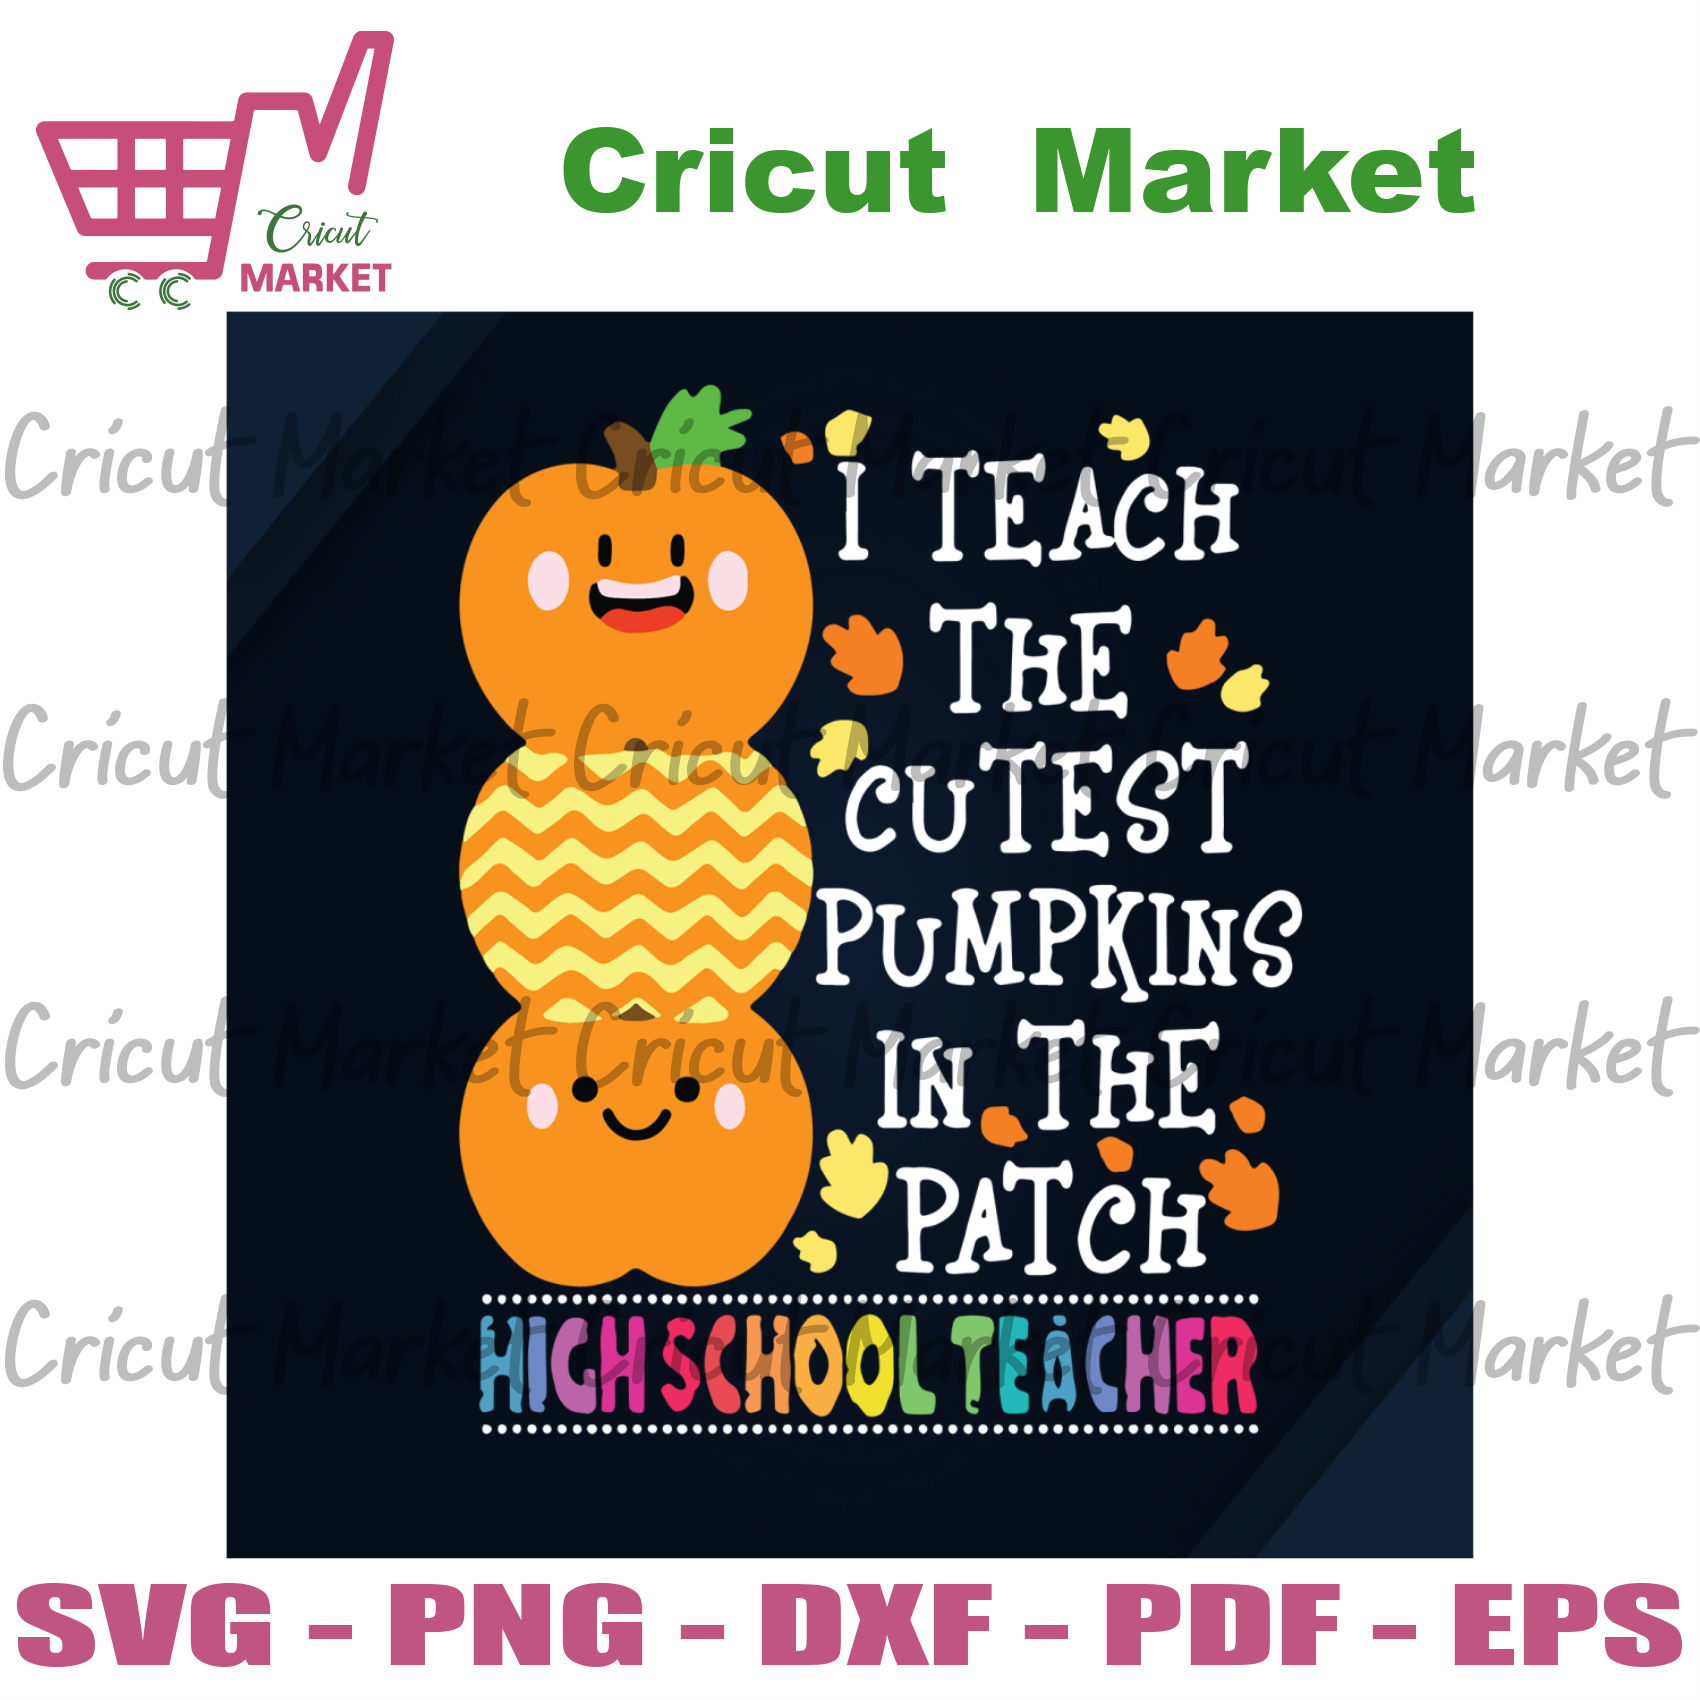 I Teach The Cutest Pumpkins In The Patch Highschool Teacher, Halloween Svg, Pumpkin Svg, Halloween Pumpkin Svg, Cute Pumpkin Svg, Highschool Svg, Halloween Highschool Svg, Teacher Svg, Hallow